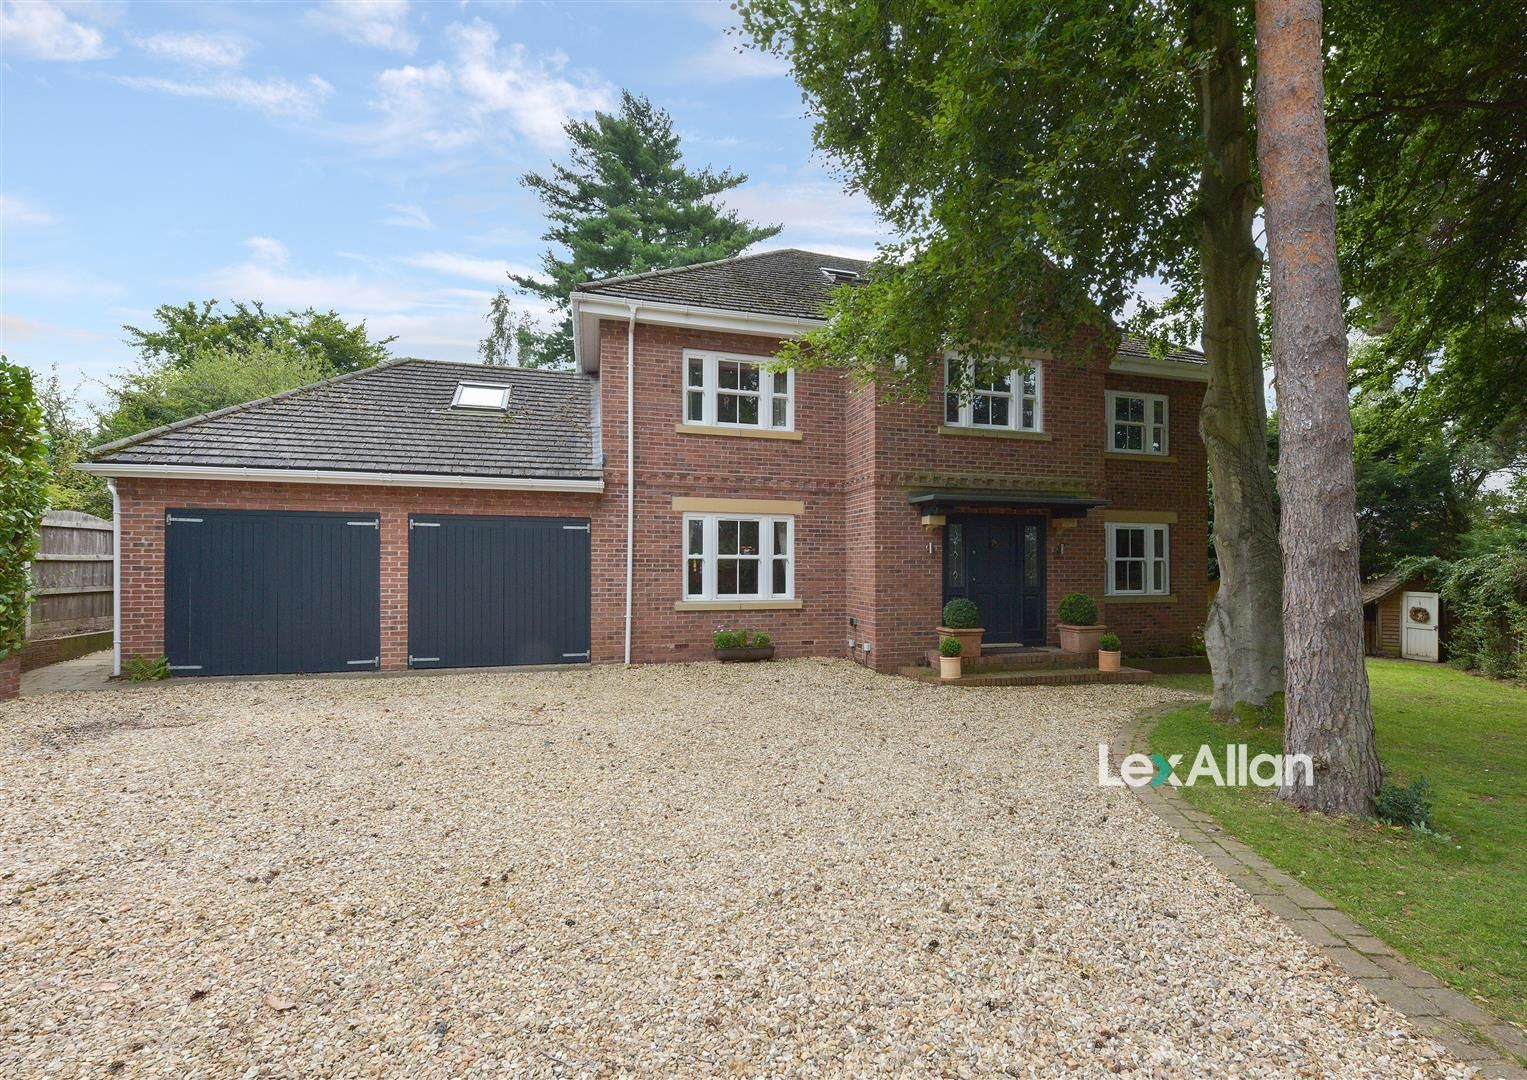 6 bed detached for sale in Kinver, DY7